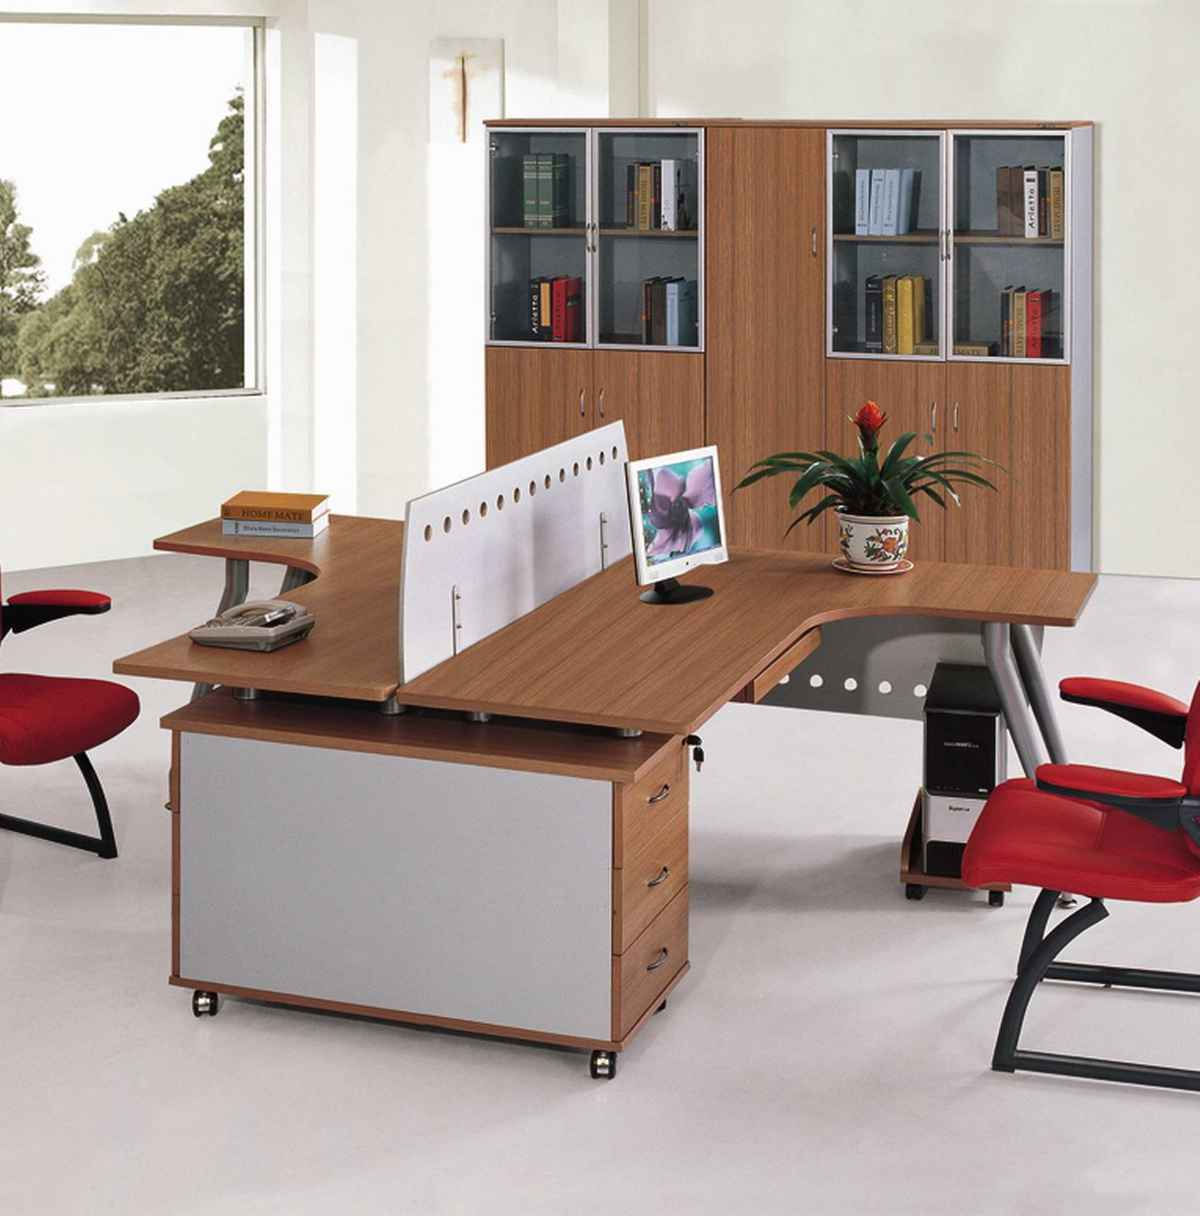 Office Desk Design Ideas design at work sleek sophisticated executive office desk Design Ideas Small Business Ikea Reception Desk